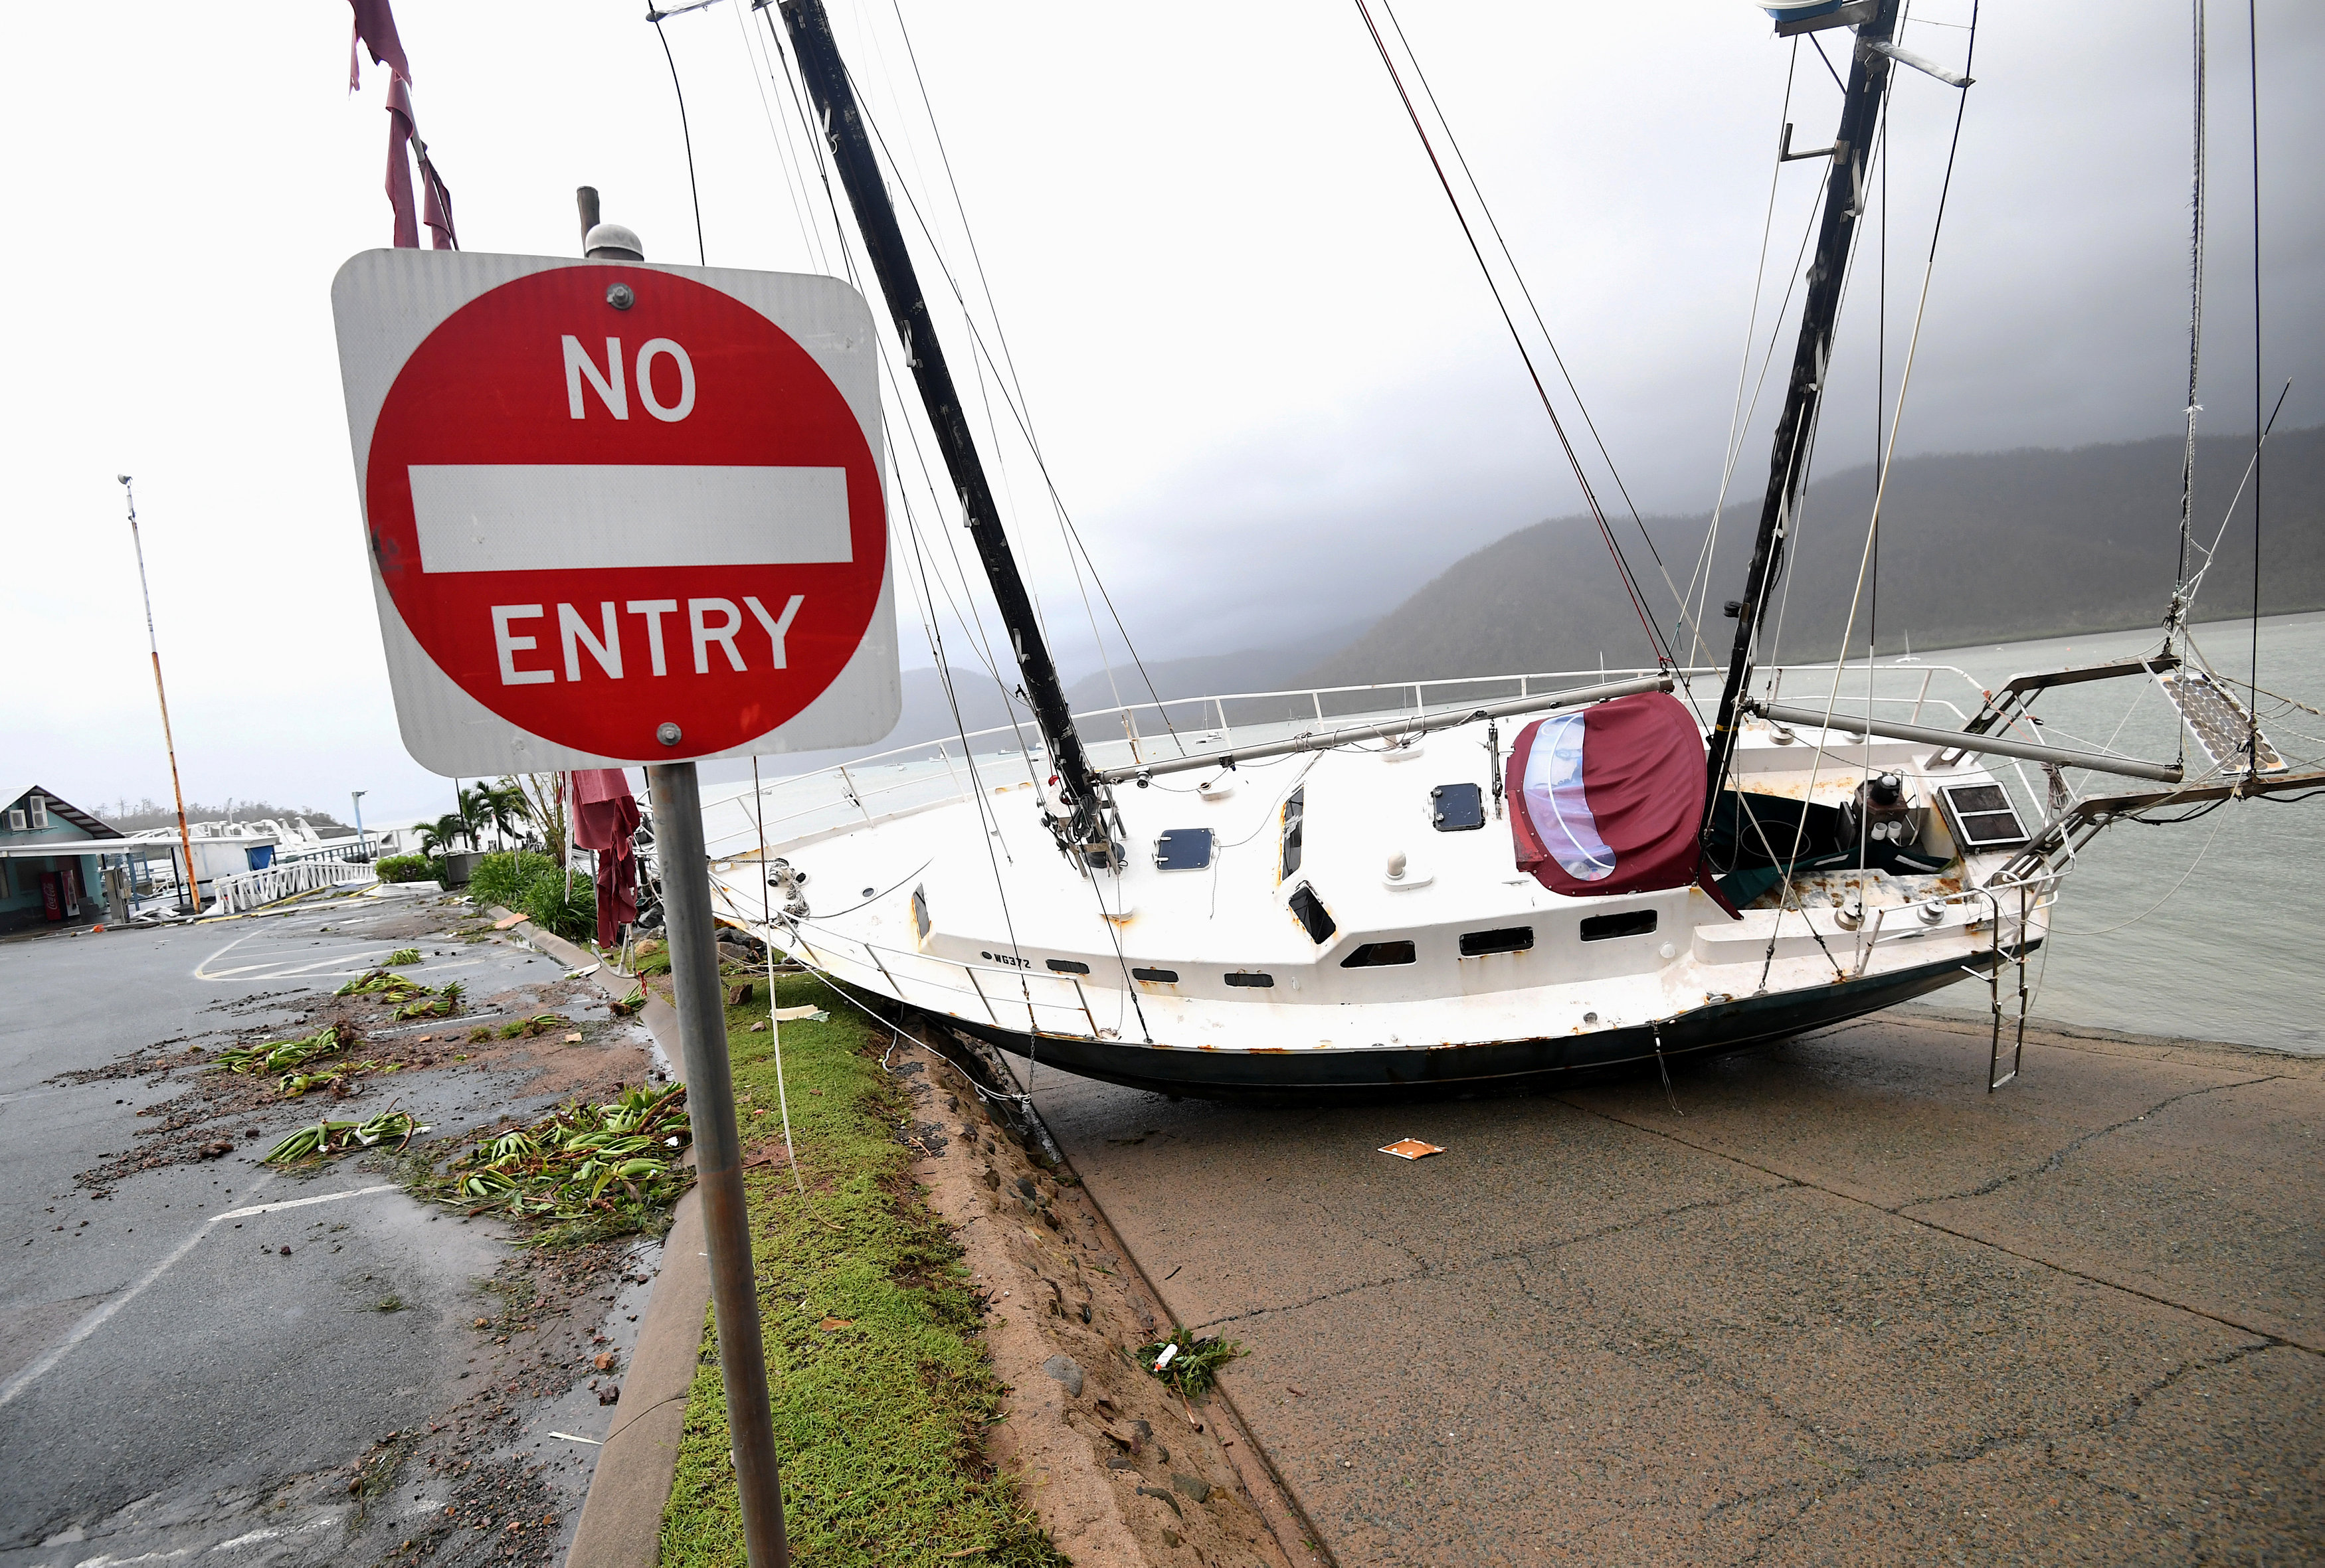 A boat is seen smashed against the bank at Shute Harbour, Airlie Beach, Wednesday, March 29, 2017. Cyclone Debbie has hit Queensland's far north coast yesterday as a category 4 cyclone, causing wide spread damage. AAP/Dan Peled/via REUTERS